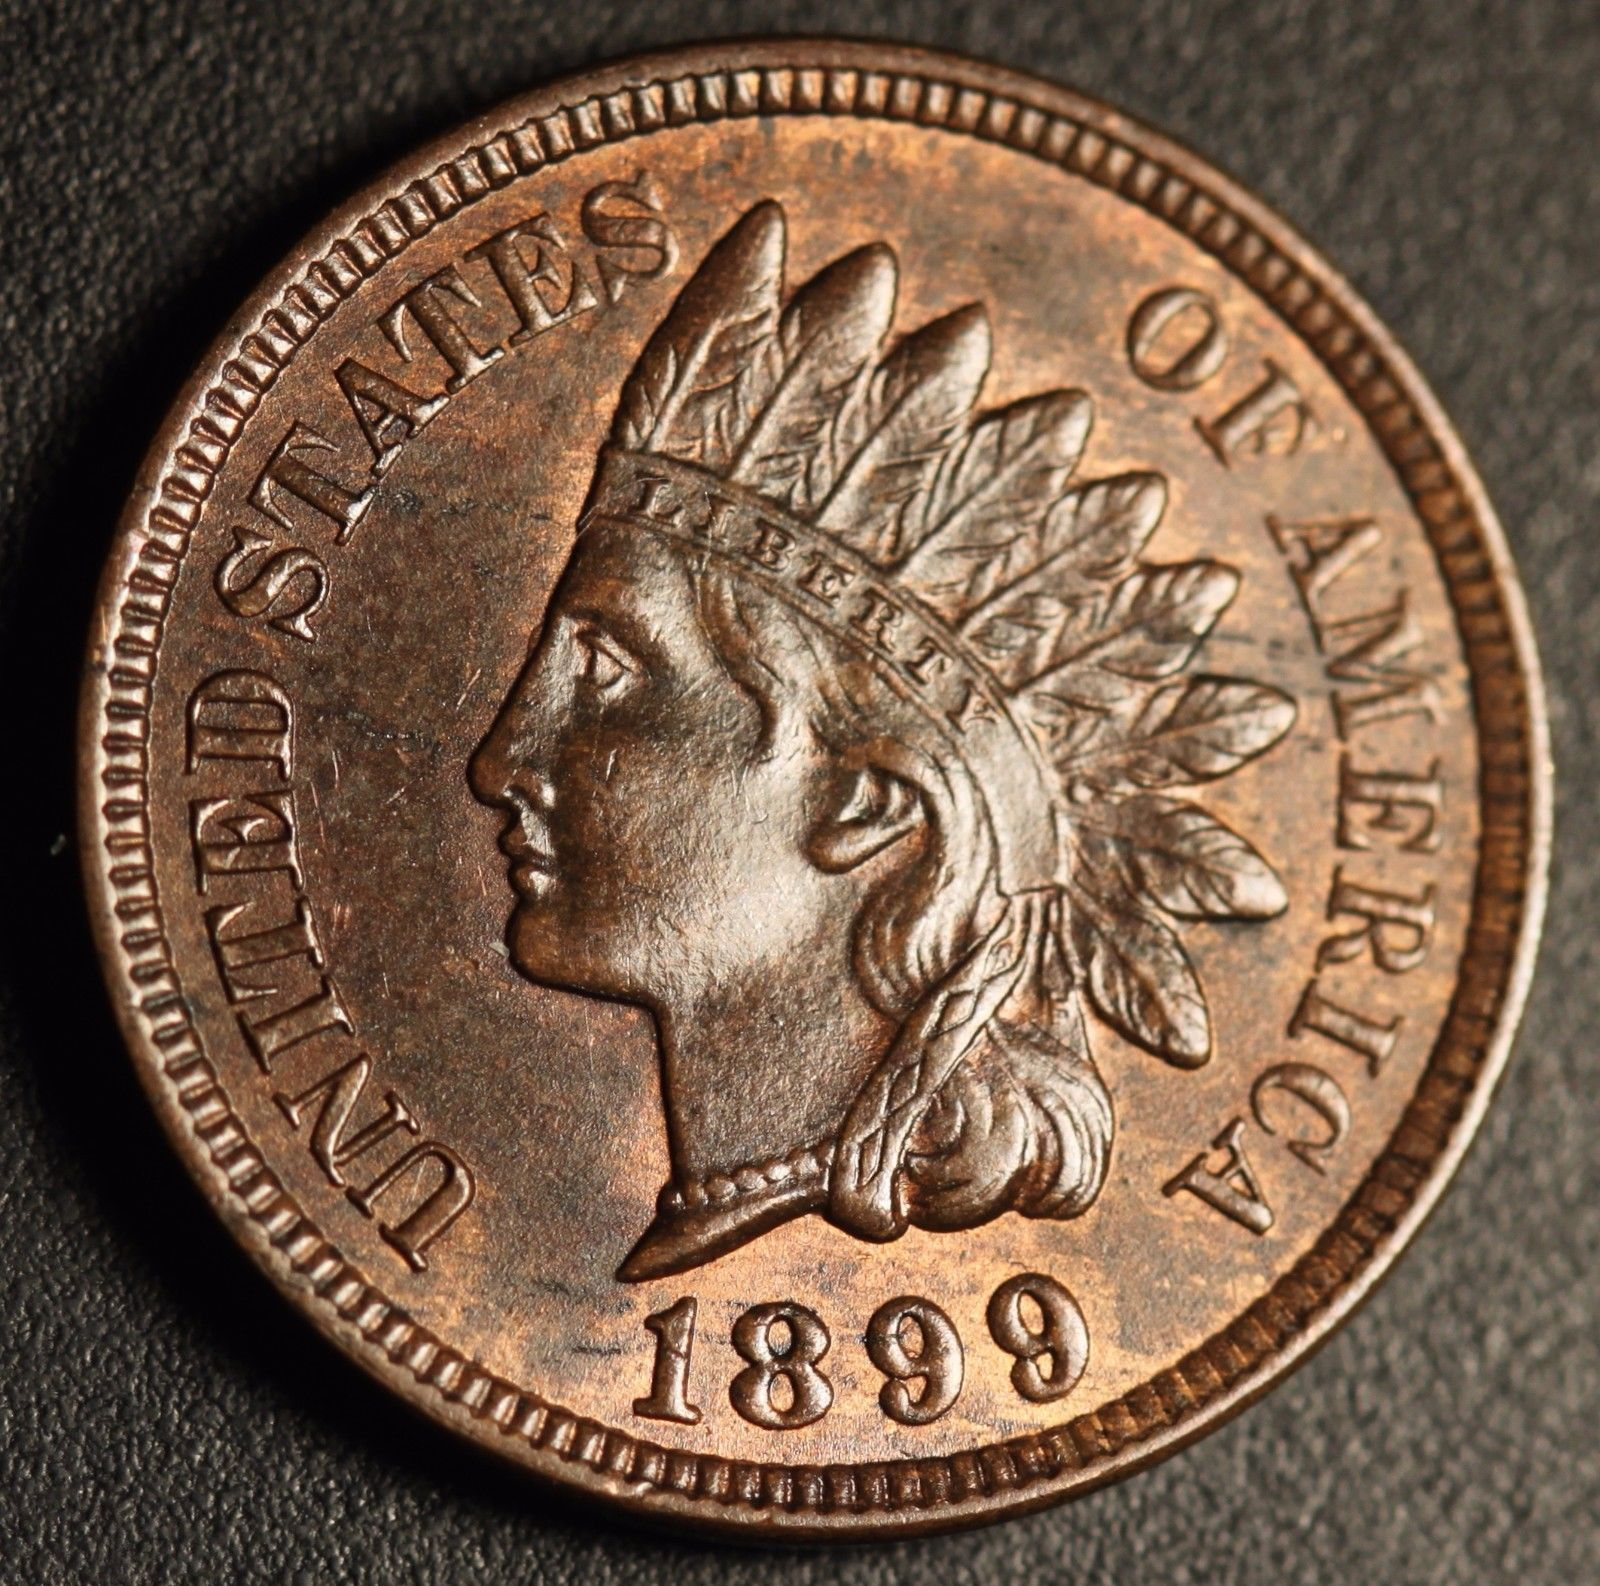 1899 Indian Head Cent Au Bu Unc With A Touch Of Mint Luster Http Rover Ebay Com Rover 1 711 53200 19255 0 1 Coins For Sale Coin Worth Coins Worth Money